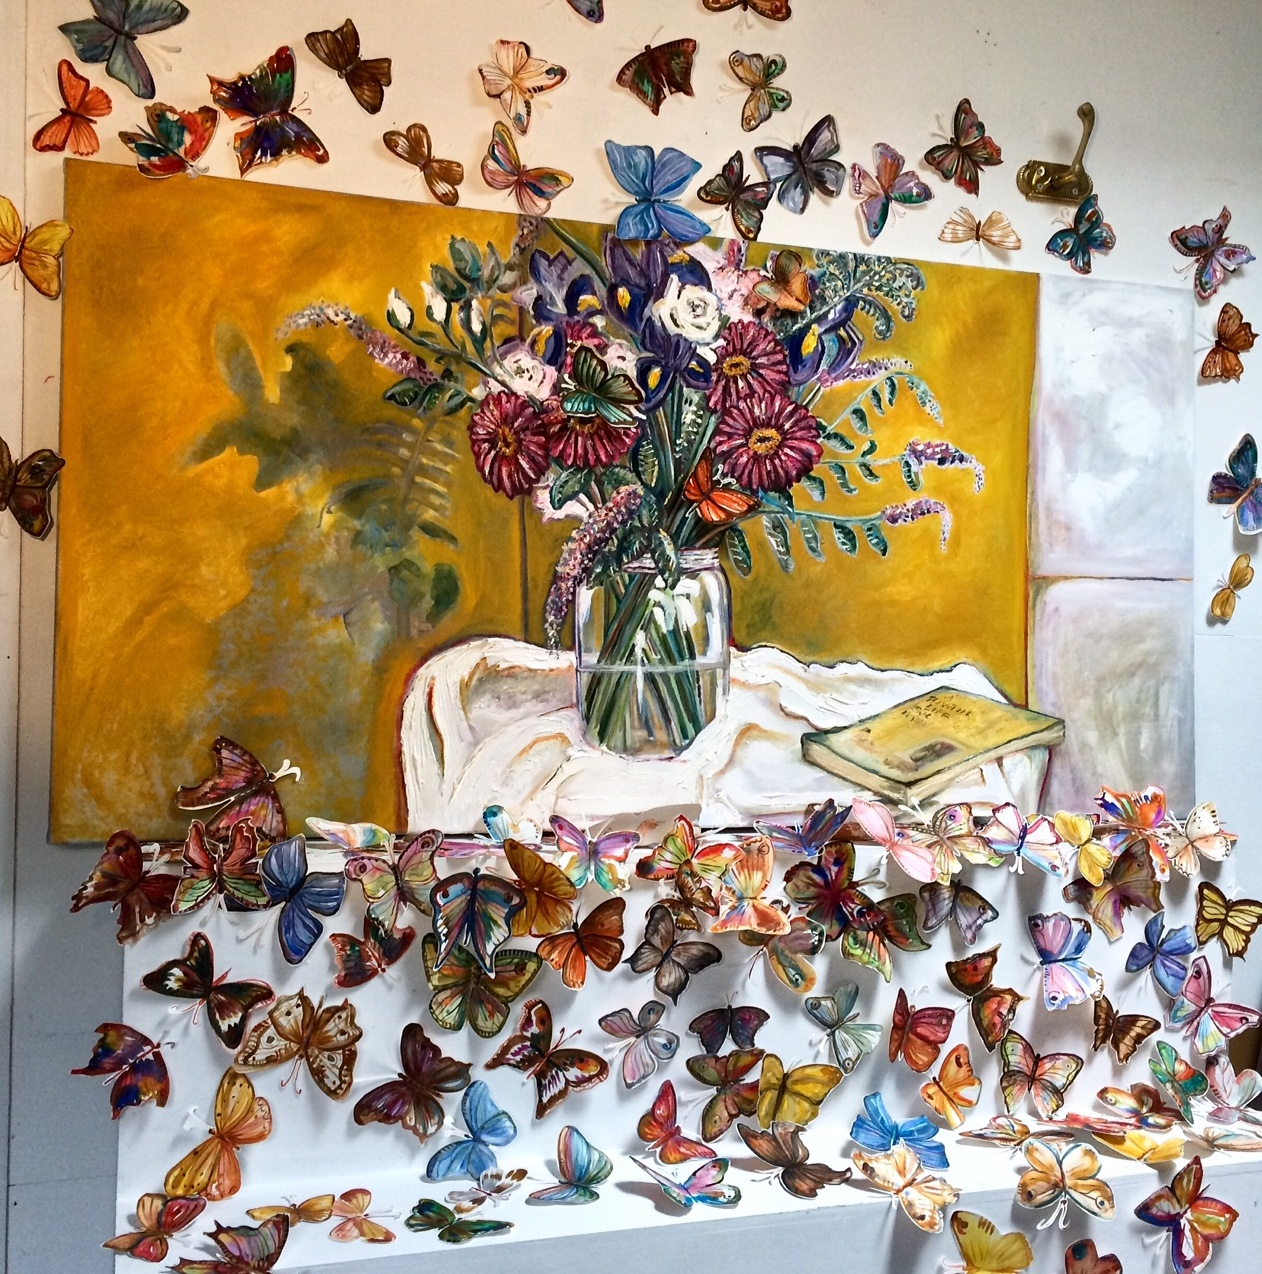 Flowers and Butterflies by artist rebecca carr